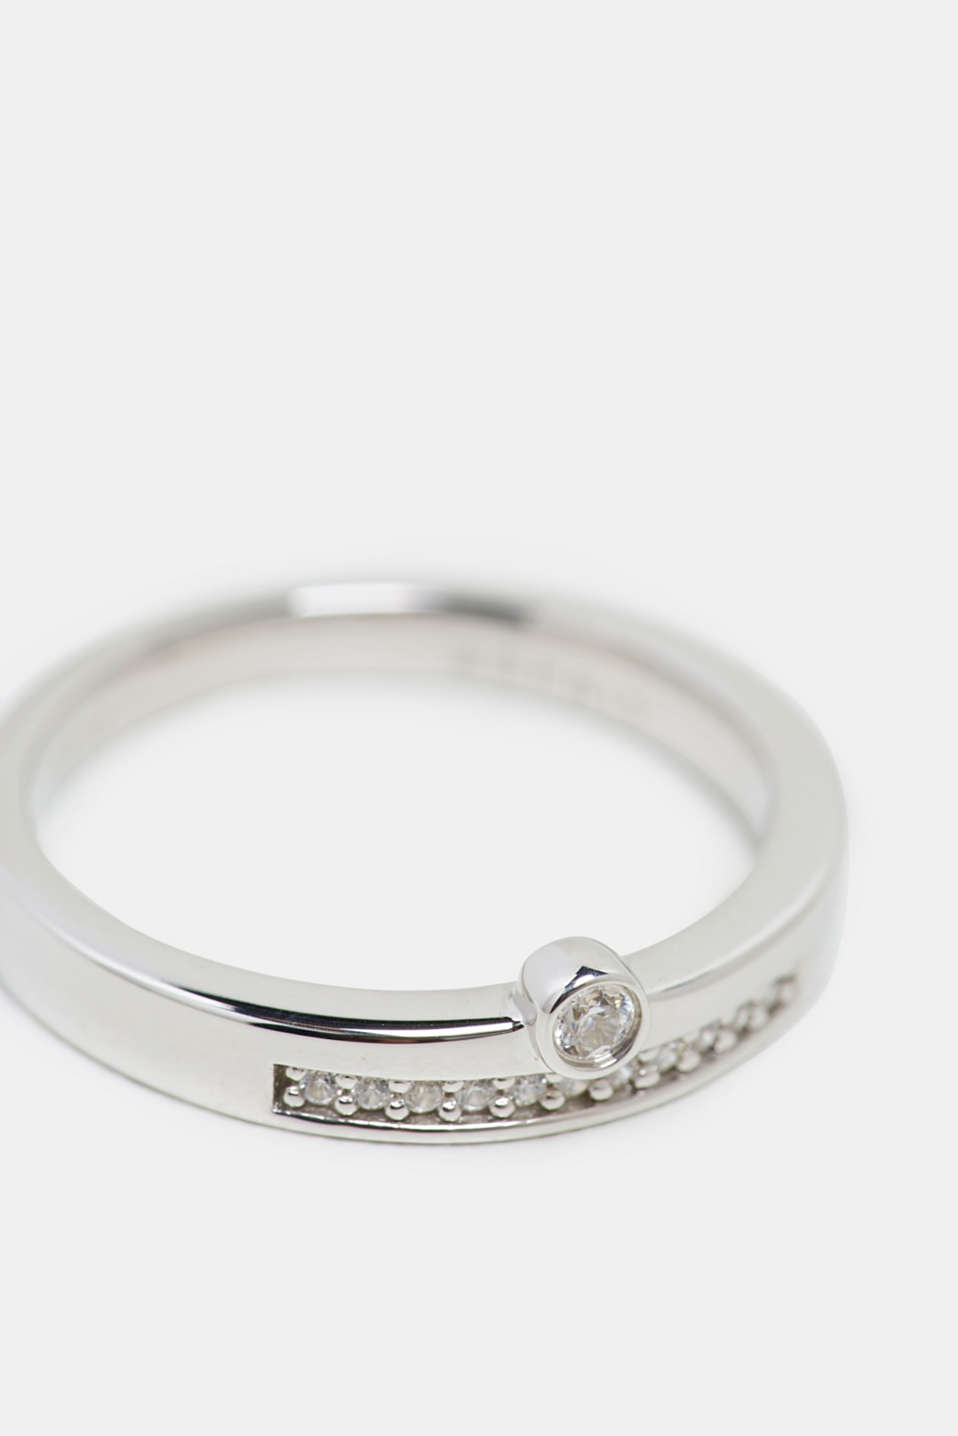 Esprit - Stainless-steel ring trimmed with different zirconia stones